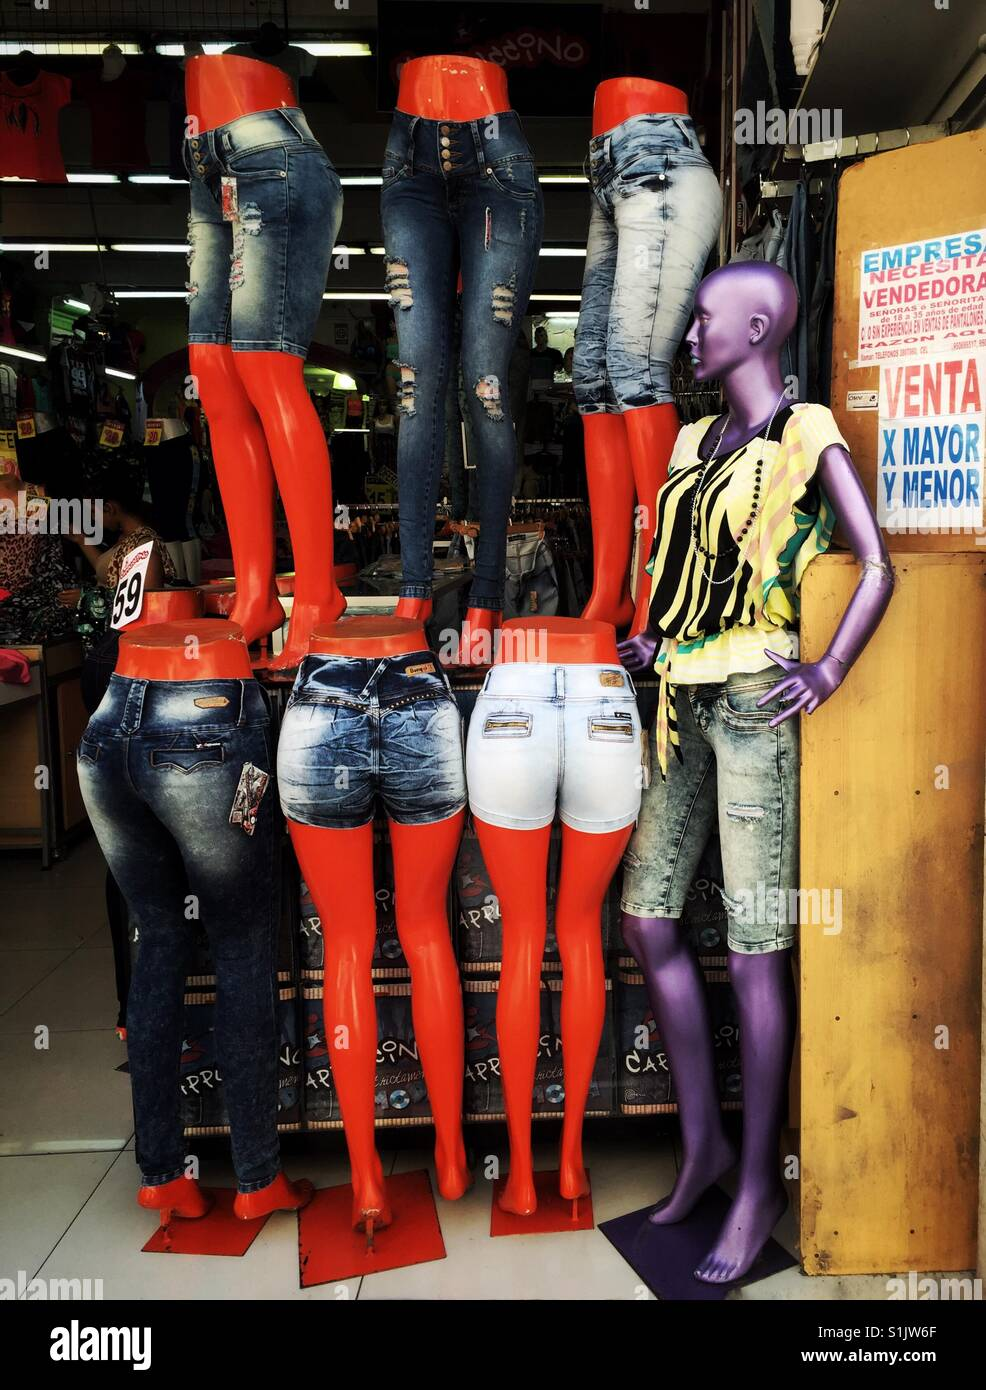 Orange legs and purple female manikin modeling cheap jeans clothes in Lima, Peru - Stock Image